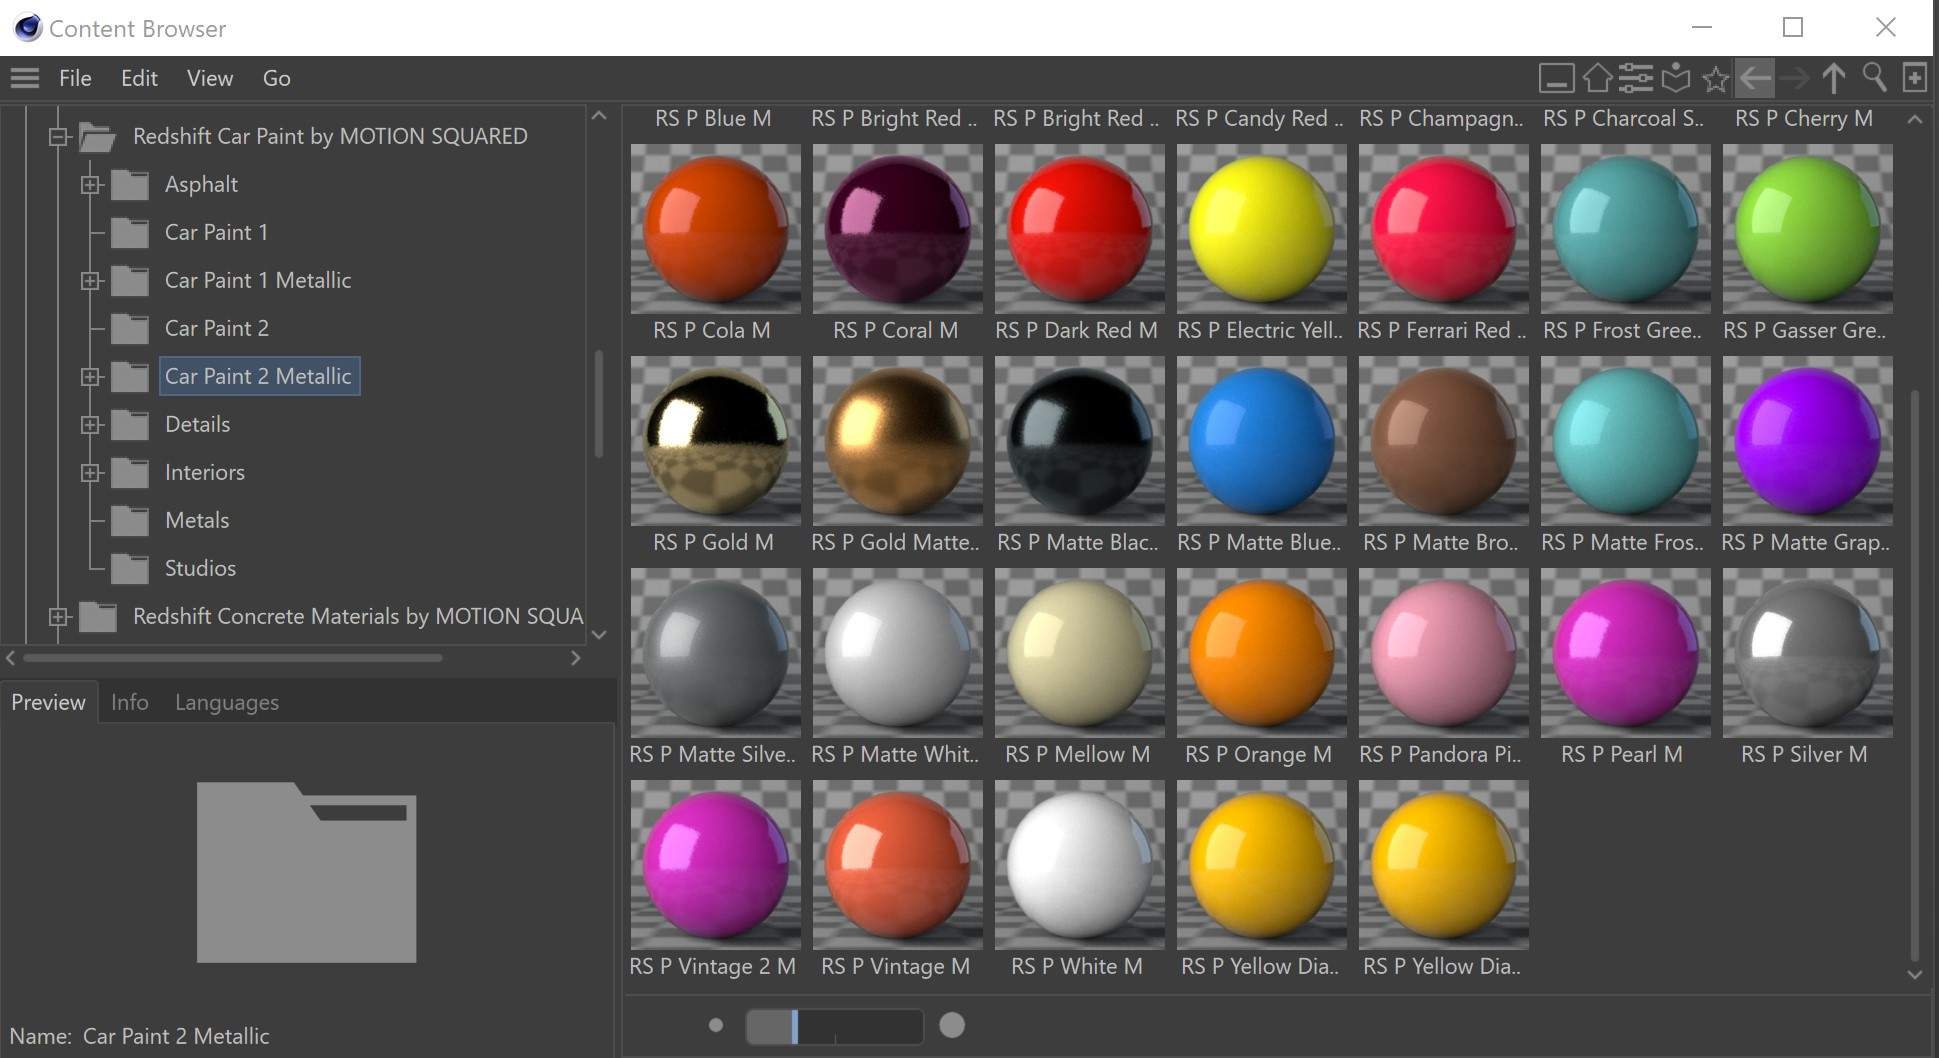 Cinema 4D Redshift Car Paint Library